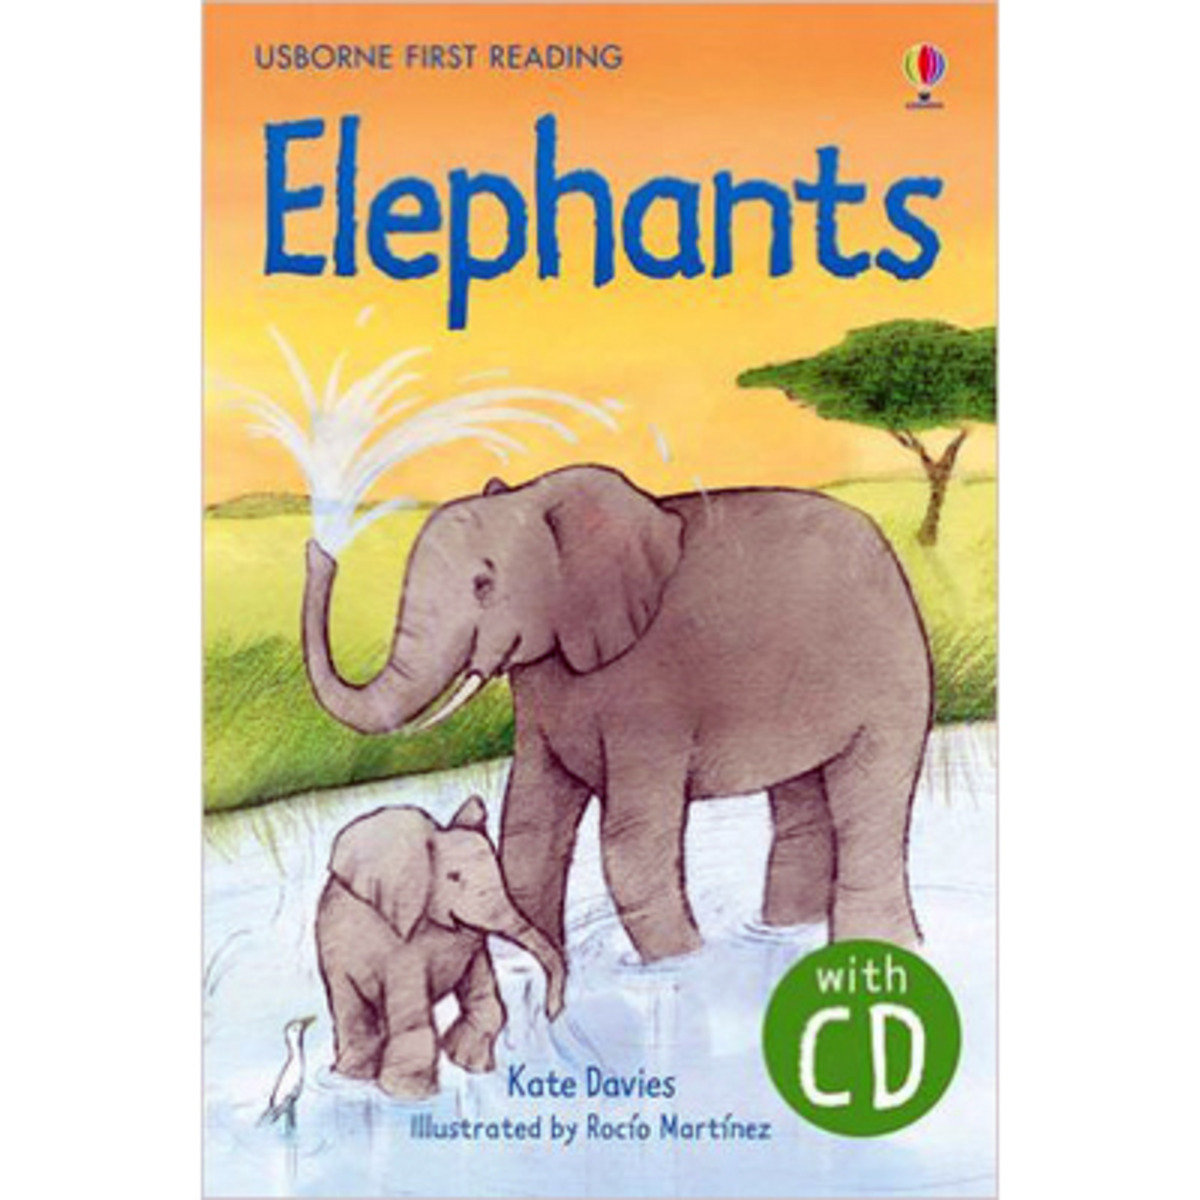 Elephants-First Reading with CD